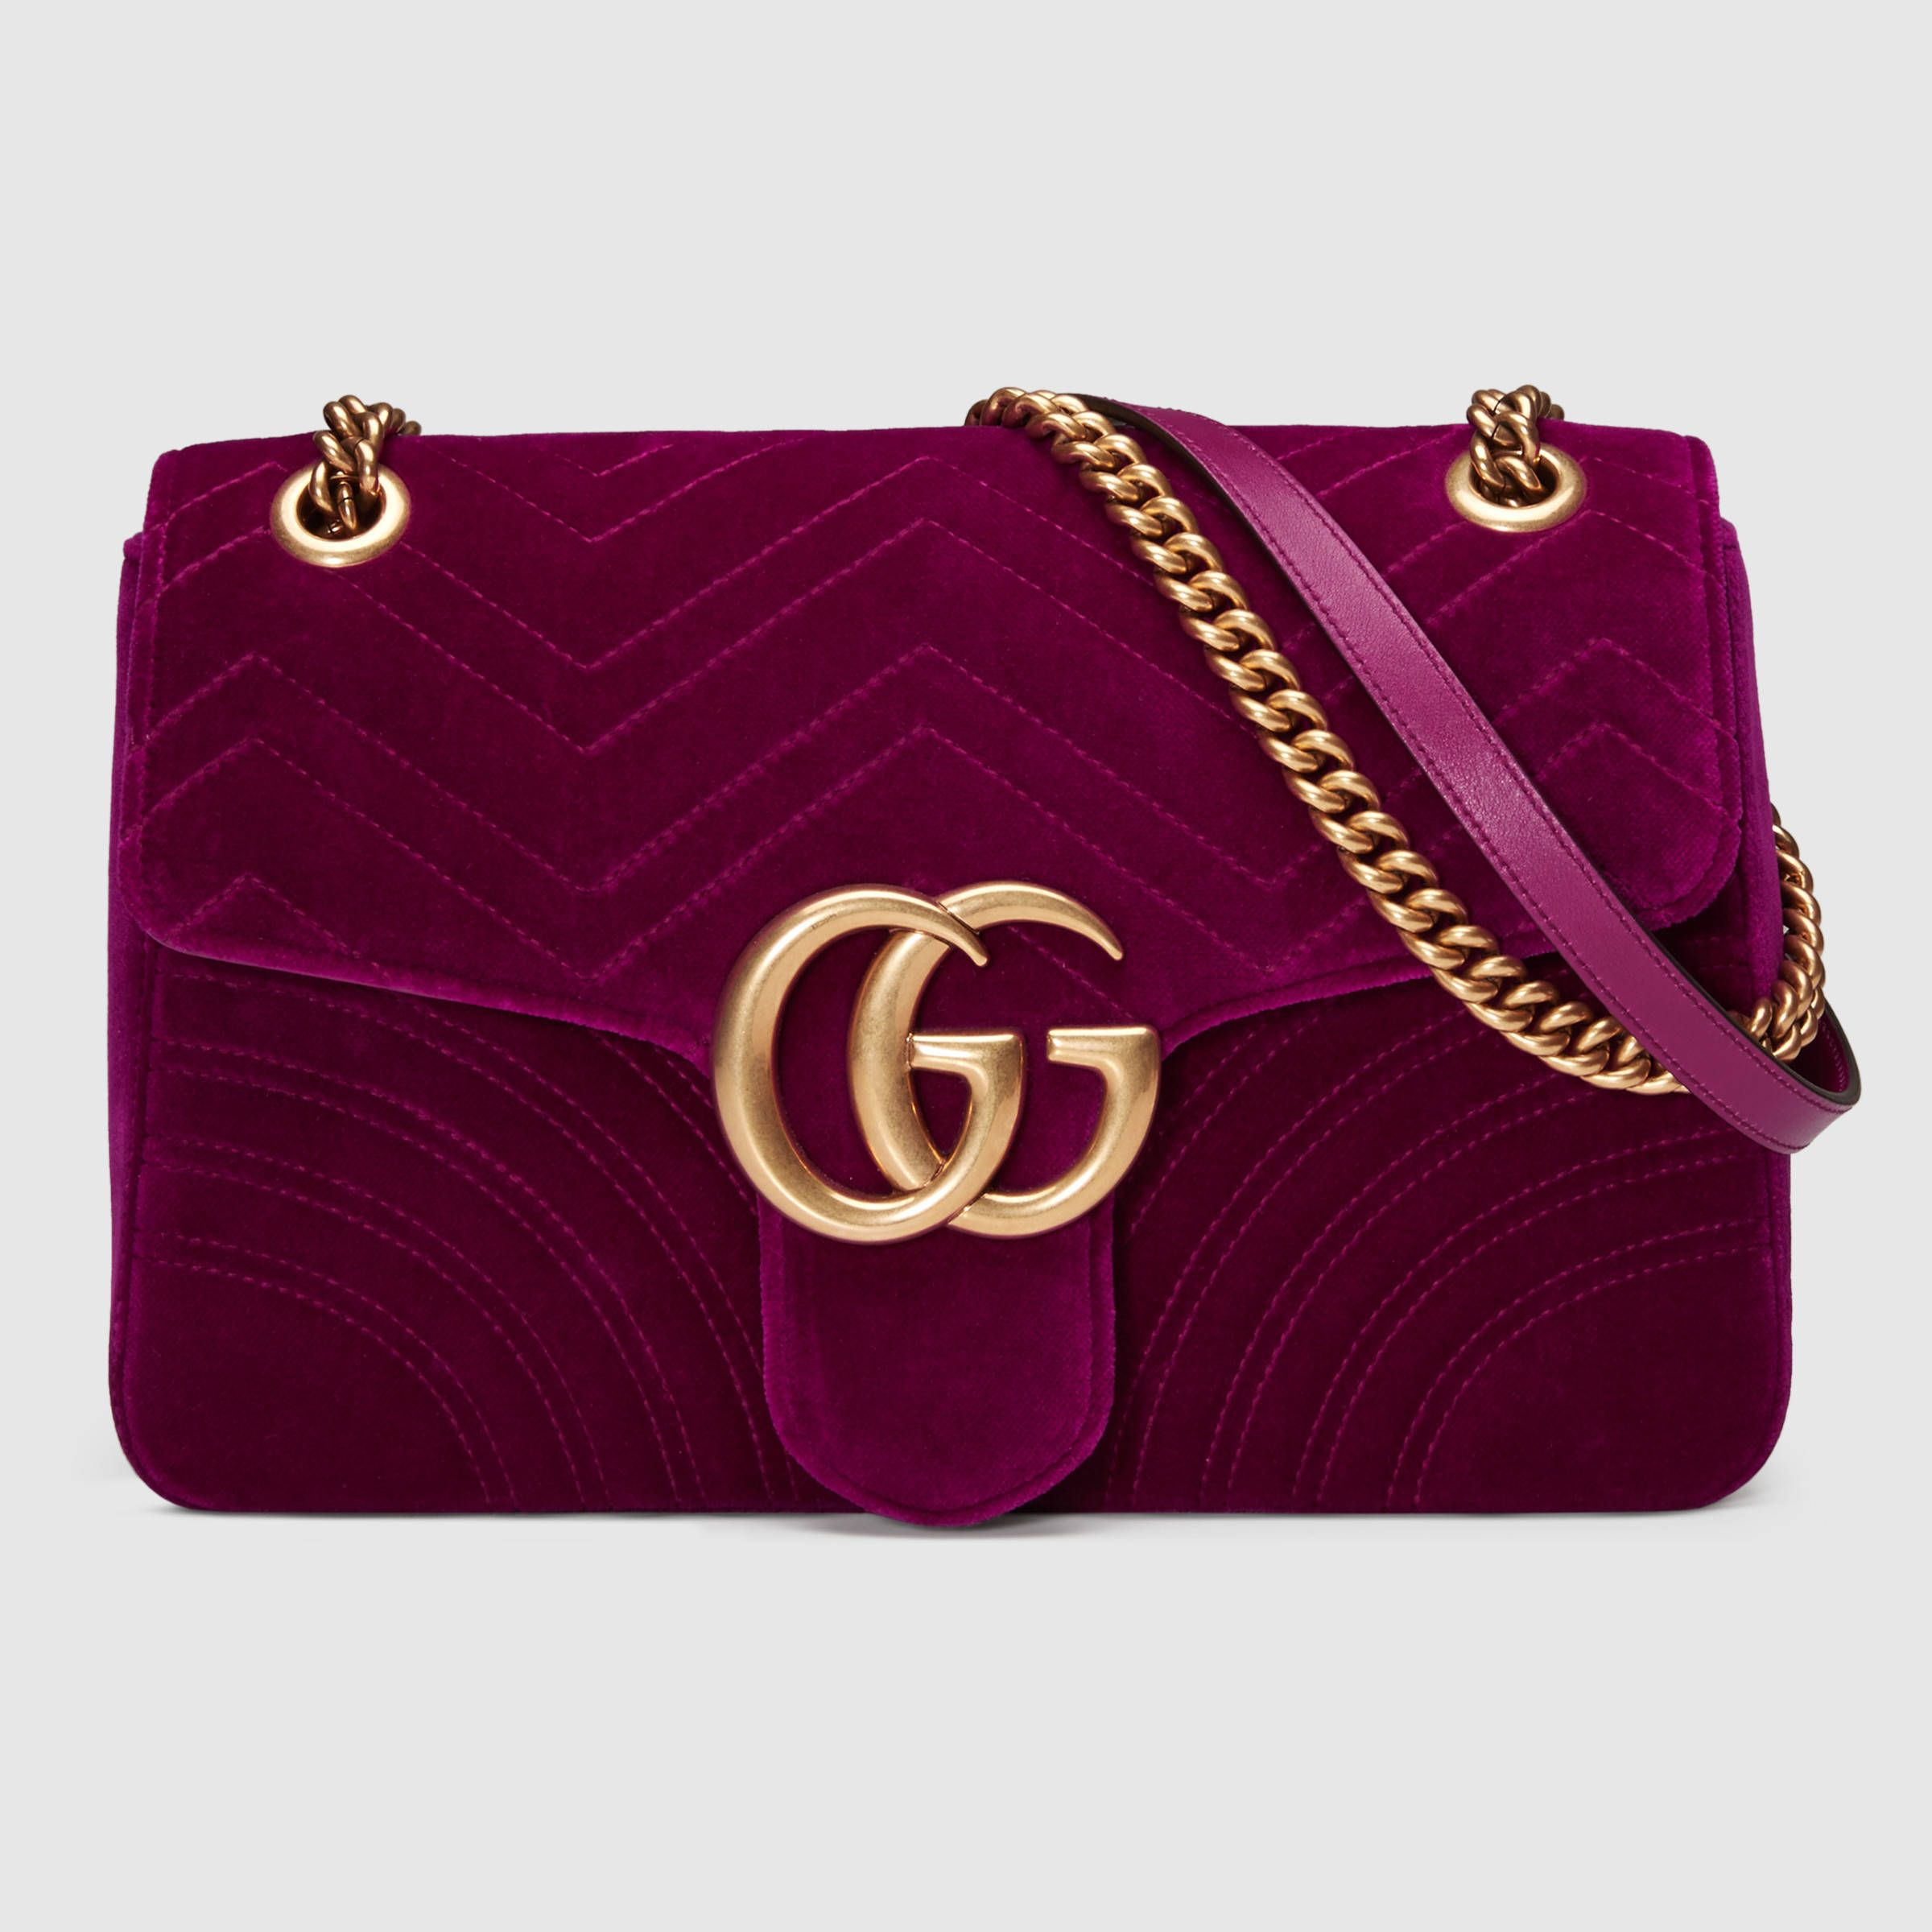 d1bafec7d73 Gucci Women - GG Marmont velvet shoulder bag - 443496K4D2T5671 ...